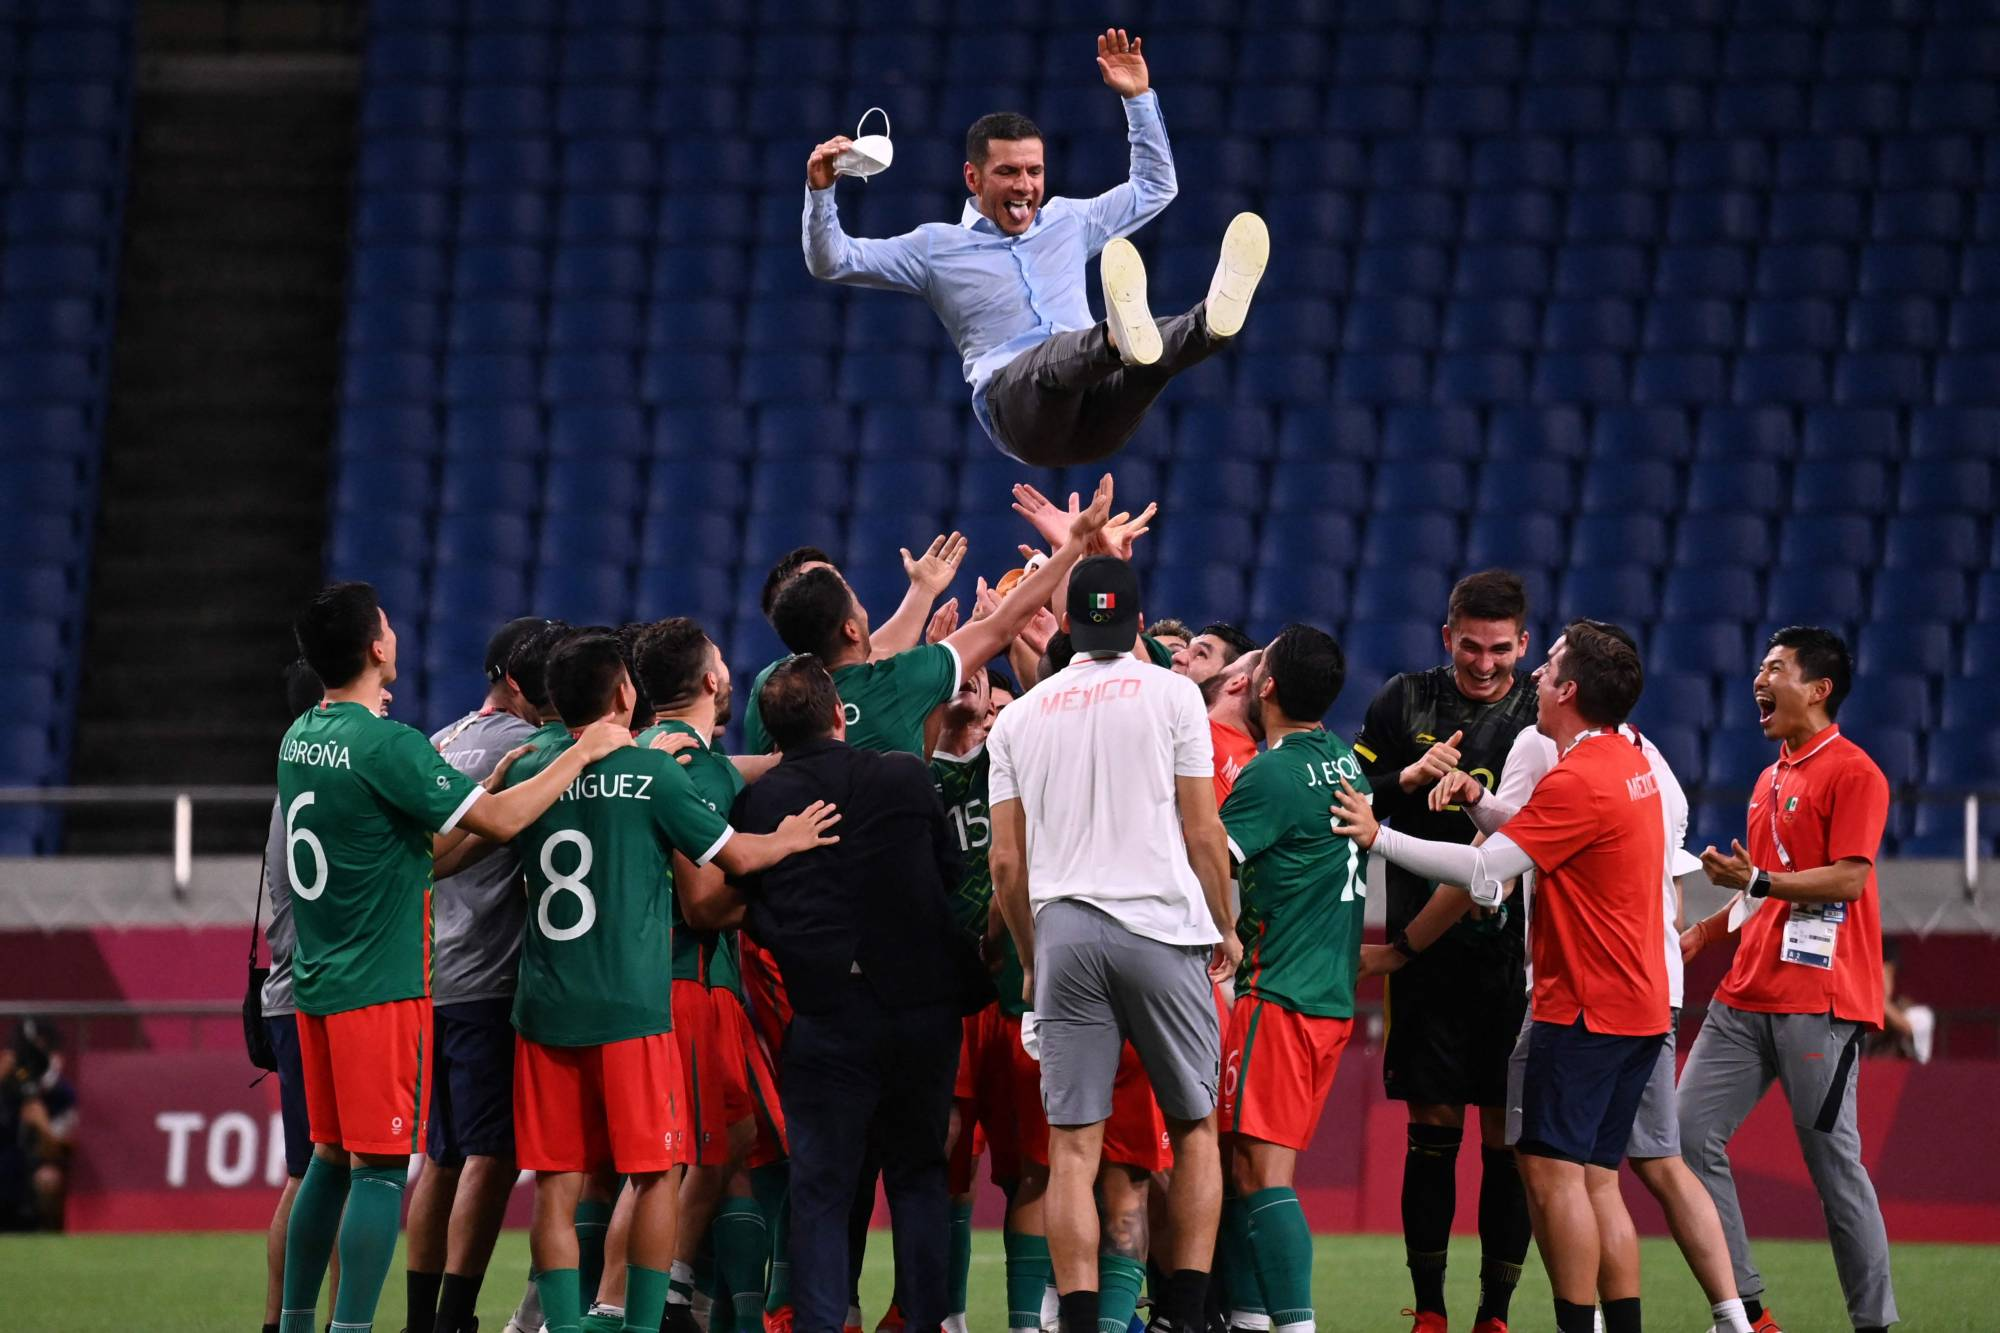 Mexico's players throw coach Jaime Lozano into the air after beating Japan to win the men's bronze medal in soccer. | AFP-JIJI